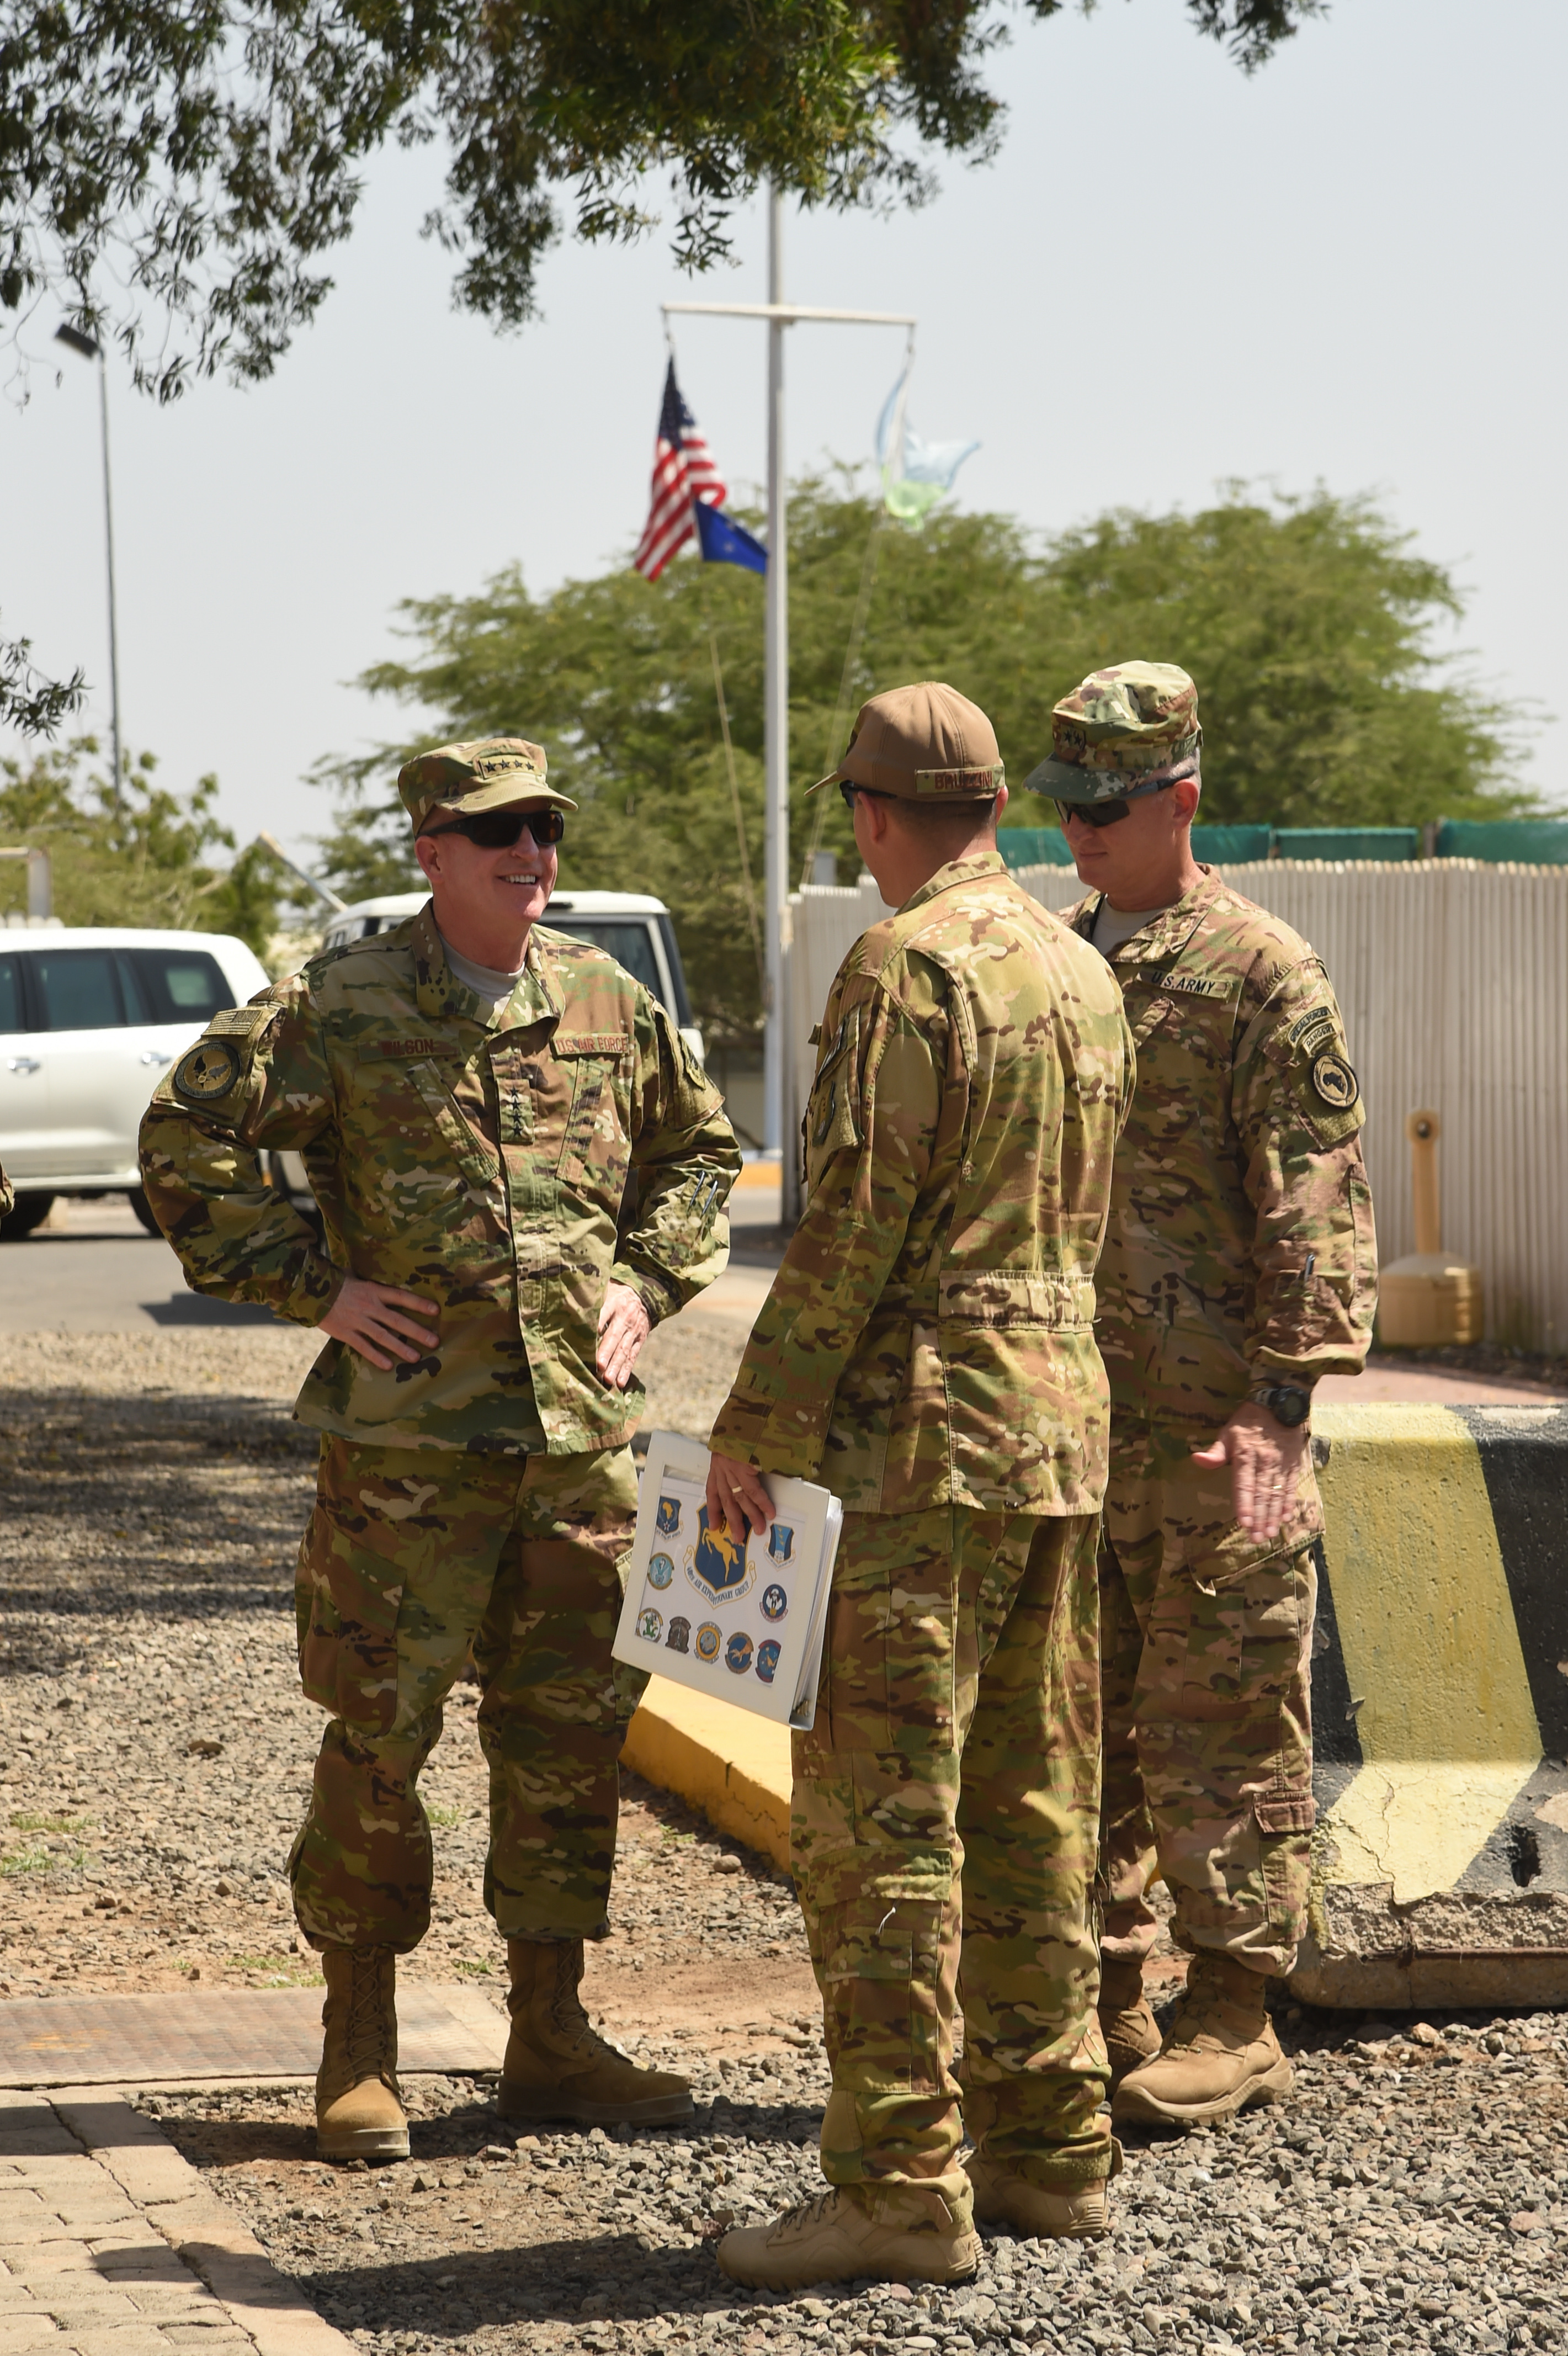 U.S. Air Force Vice Chief of Staff Gen. Stephen Wilson, left, speaks with Maj. Gen. Kurt Sonntag, commanding general of Combined Joint Task Force-Horn of Africa (CJTF-HOA), right, during a visit to Camp Lemonnier, Djibouti, April 11, 2017. Wilson visited CJTF-HOA and other tenant commands with Chief Master Sgt. of the Air Force Kaleth Wright to gain a better understanding of Air Force integration and missions in the U.S. Africa Command area of responsibility. (U.S. Air National Guard photo by Staff Sgt. Penny Snoozy)